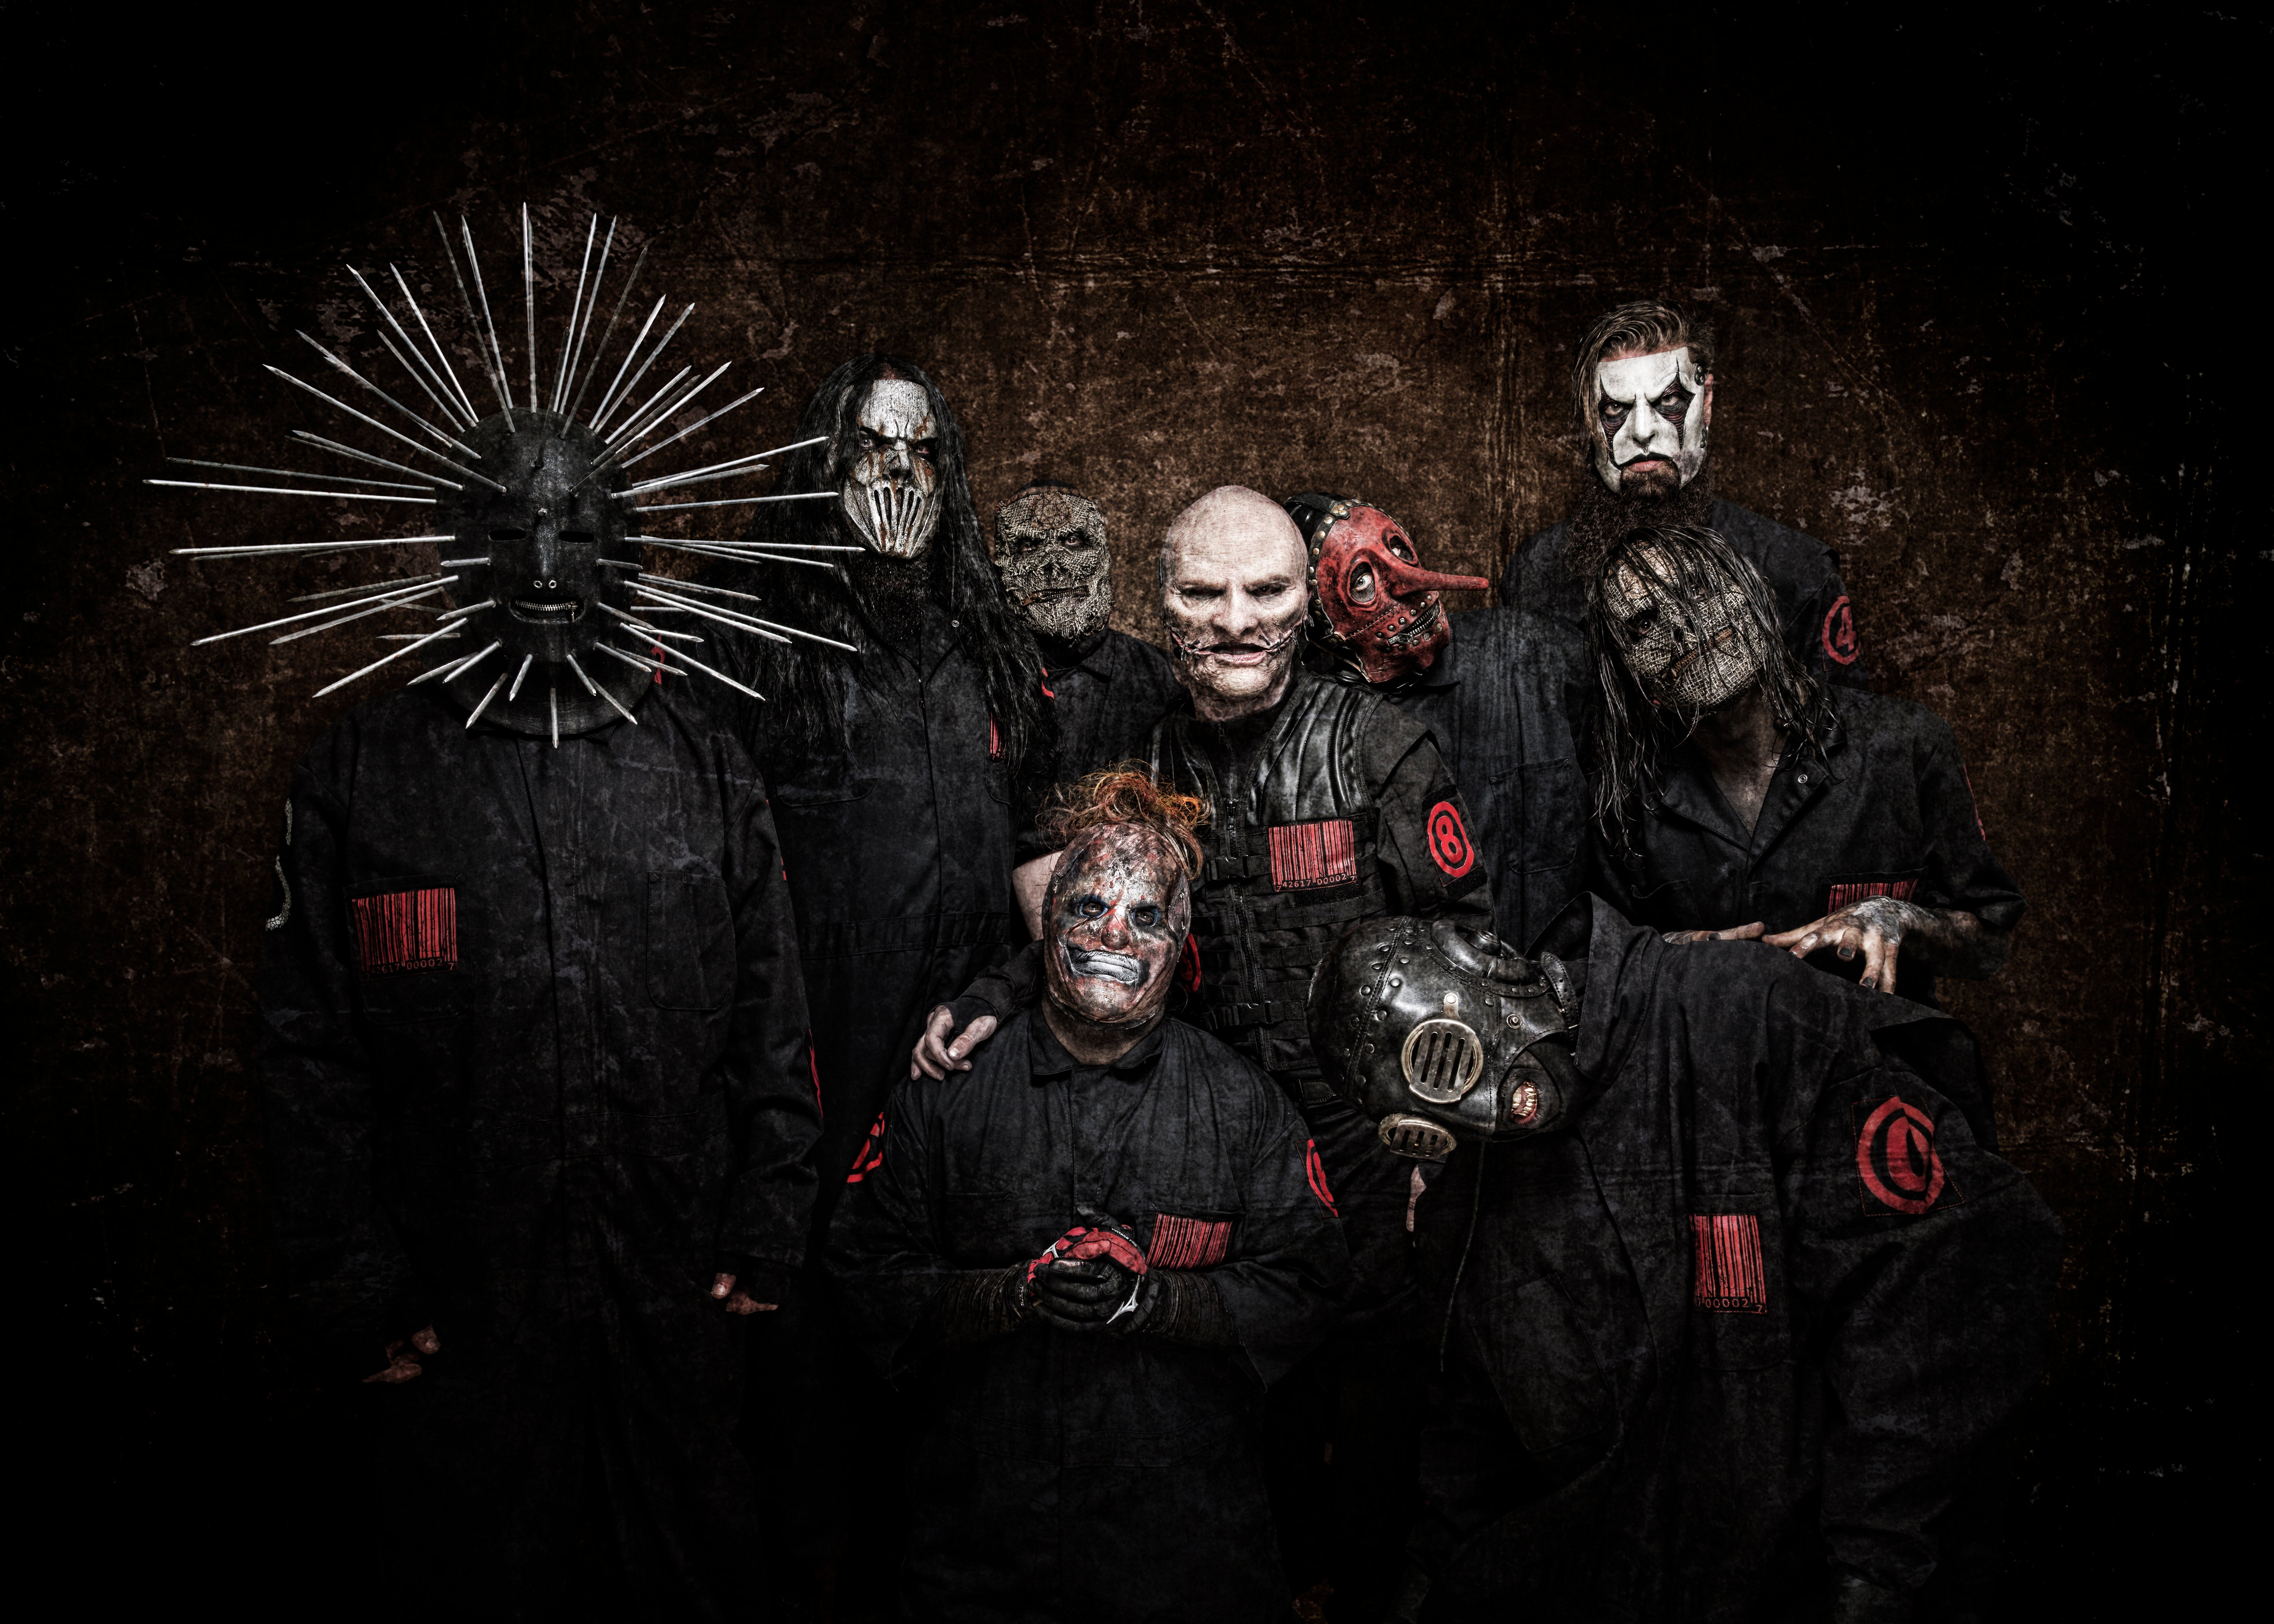 New Slipknot Album due out August 9.